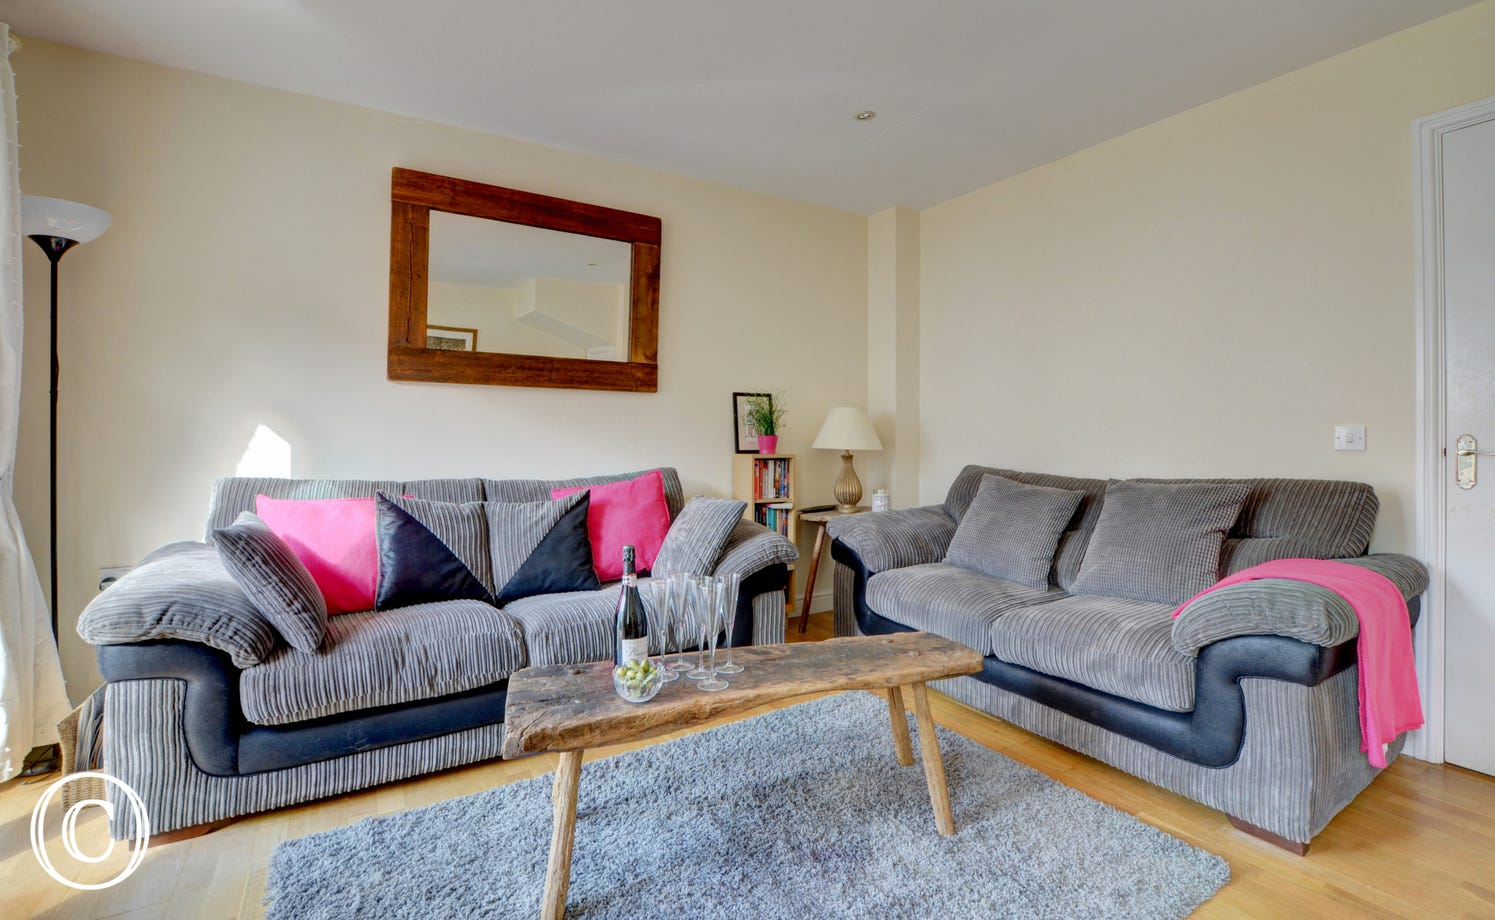 Comfortable sofas in the sitting room which look out over the patio